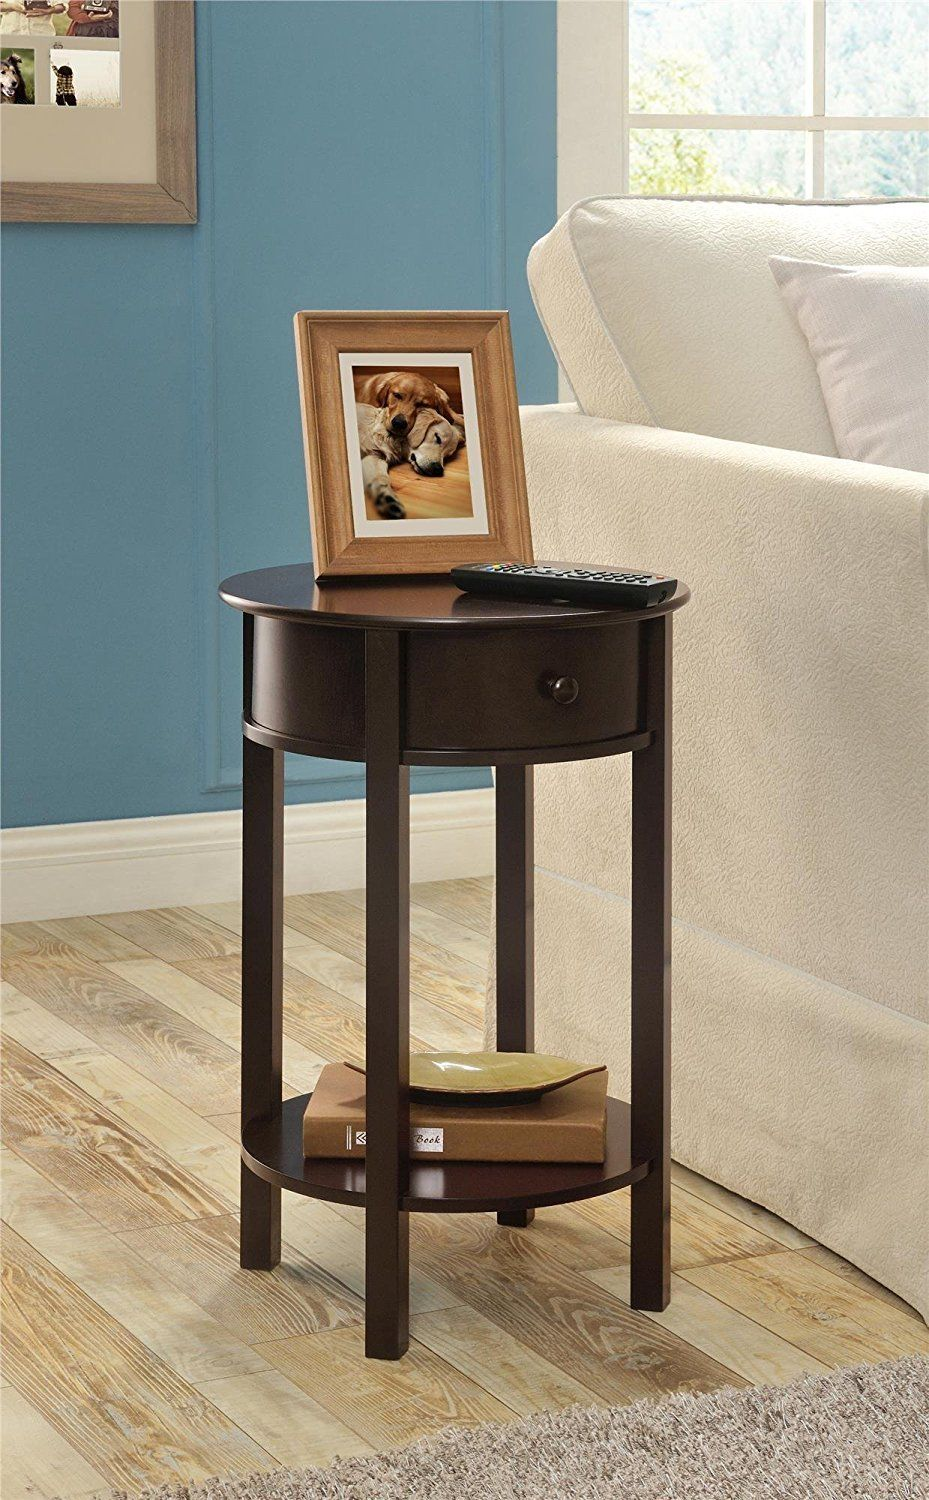 small accent table end side round furniture storage living with drawer maple worlds away peva tablecloth rubber carpet edging trim dining room suites outdoor heater antique